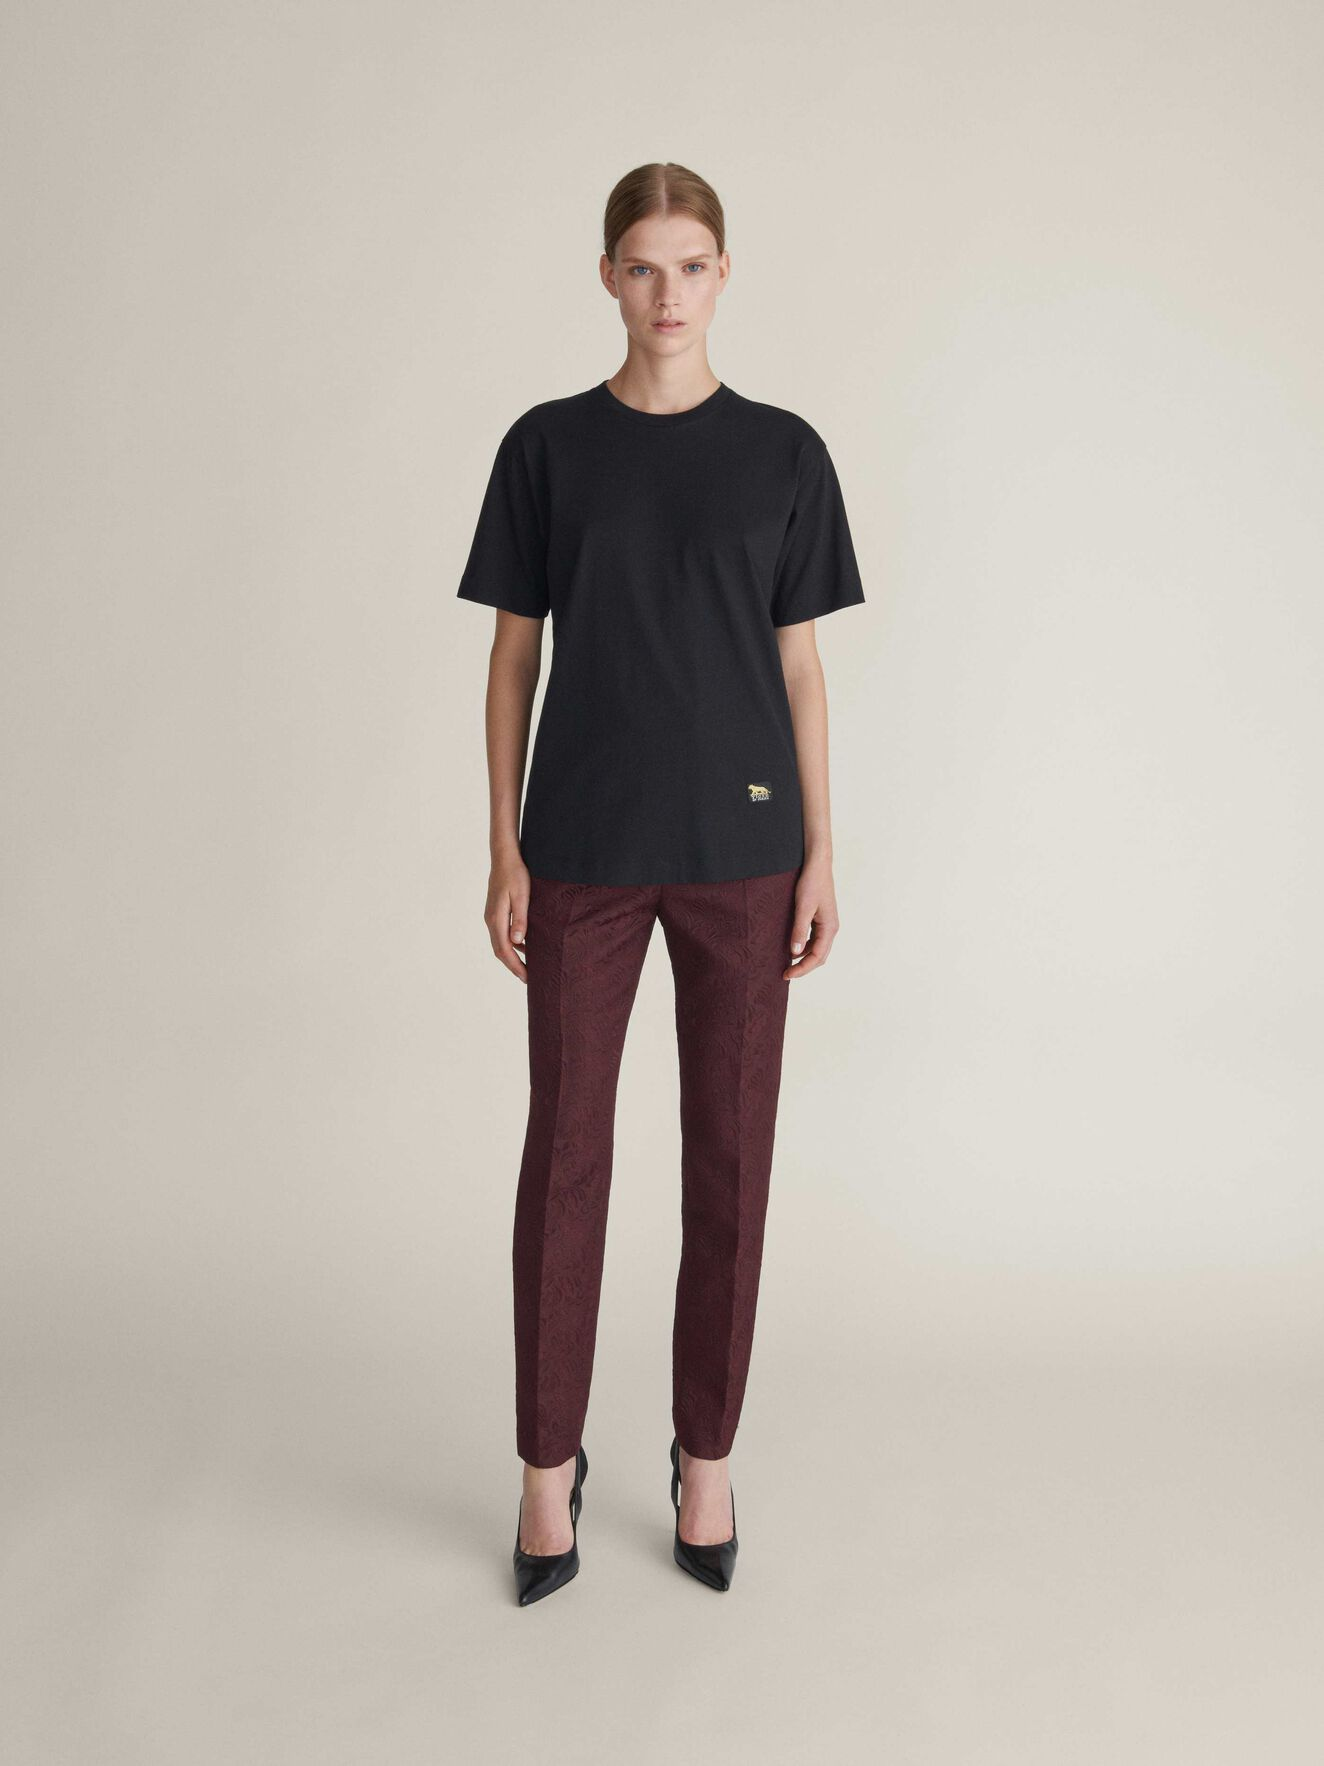 Dellana T-Shirt in Midnight Black from Tiger of Sweden